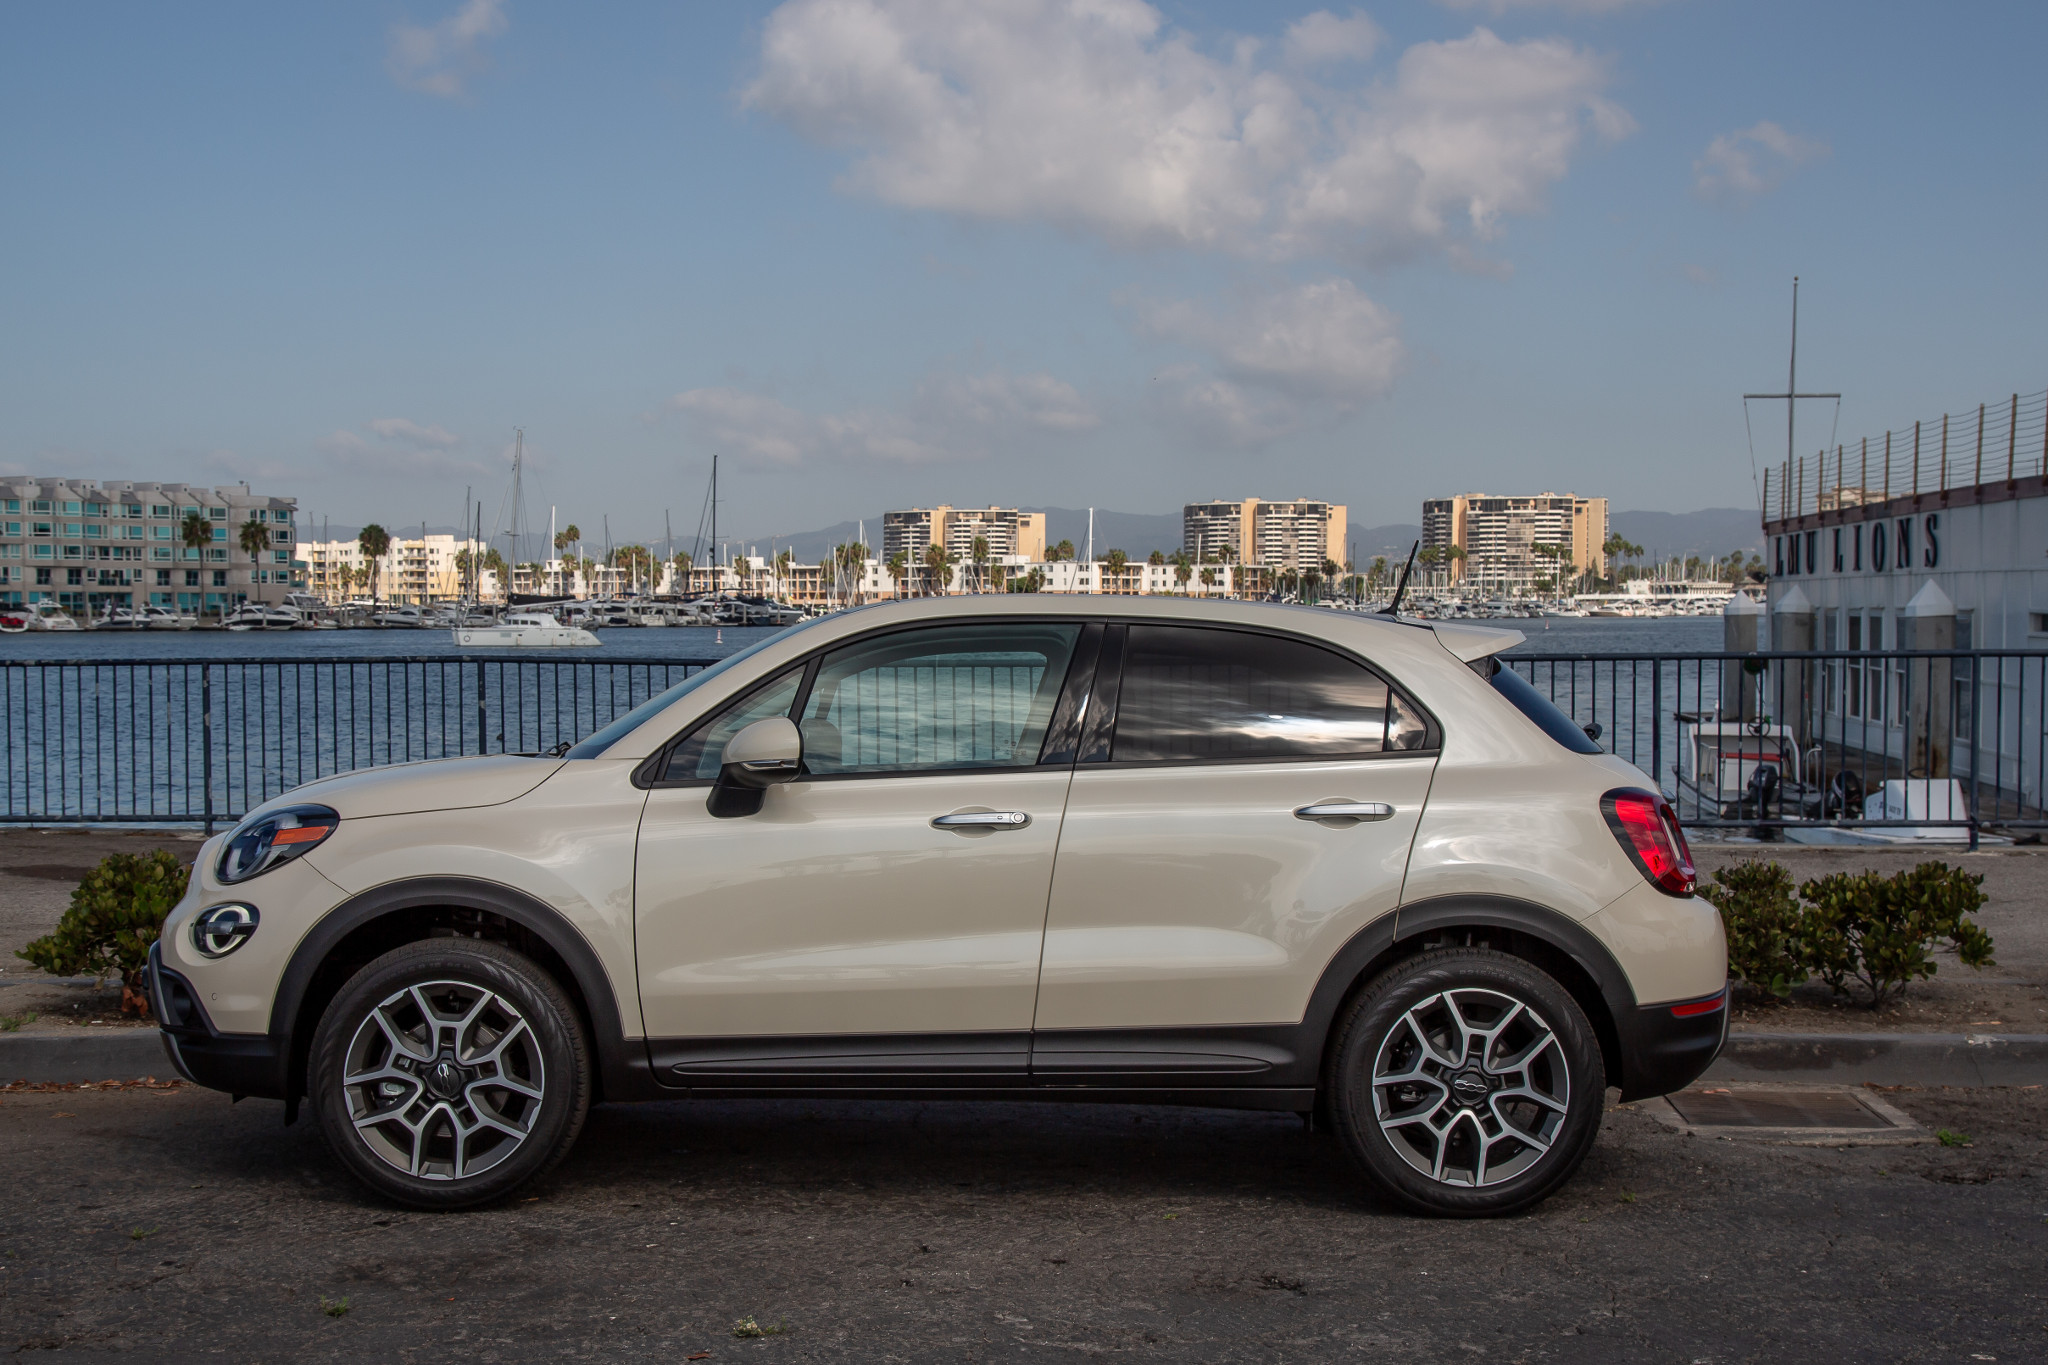 2019 Fiat 500X Review: New Engine Can't Solve All Problems